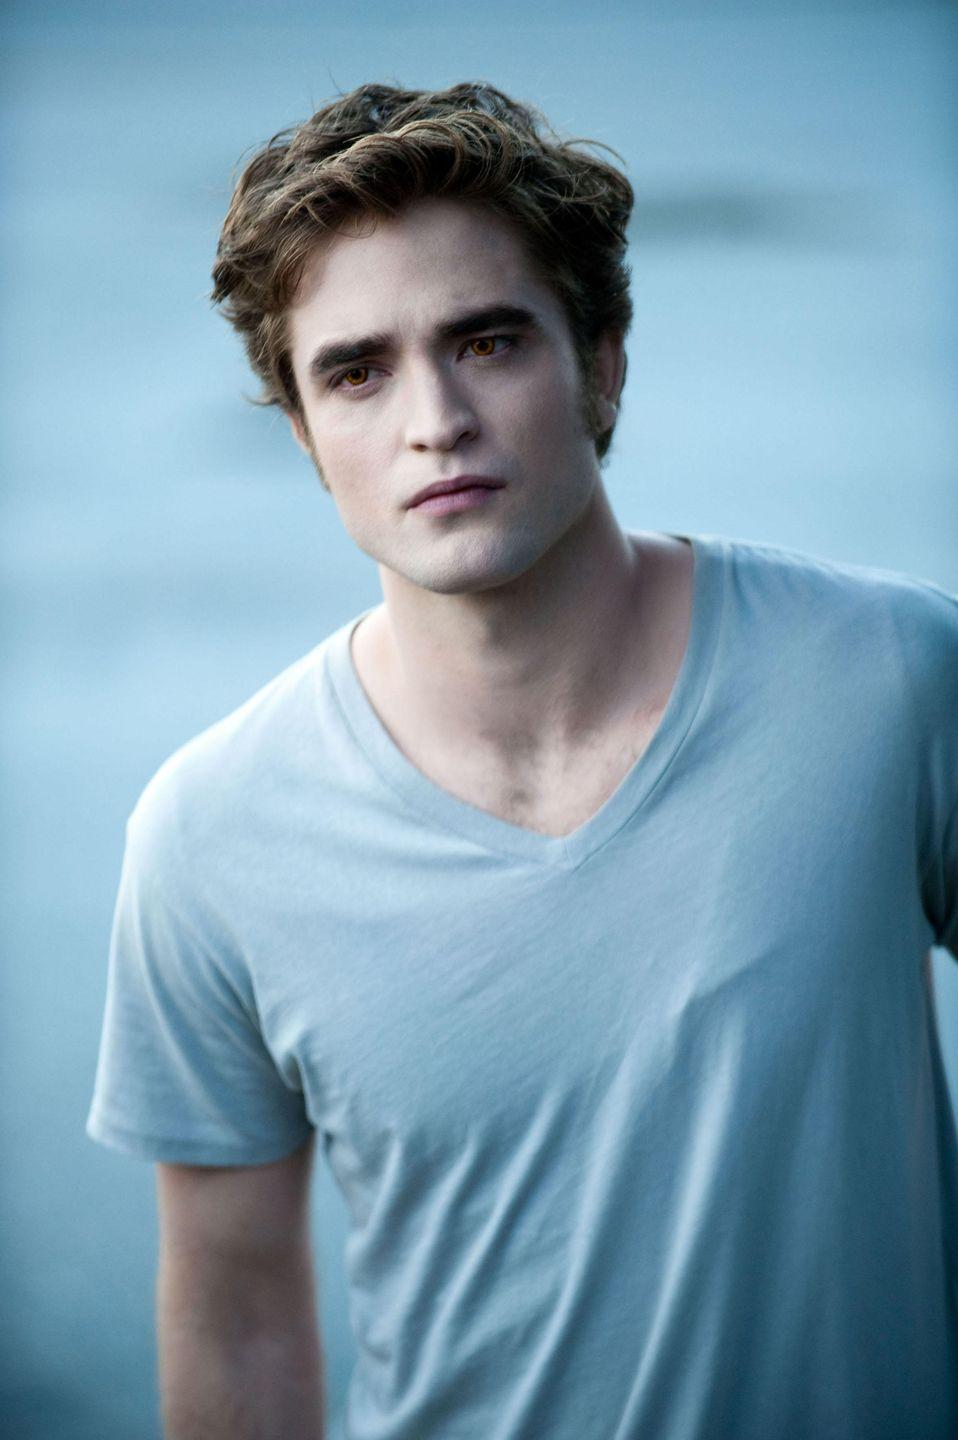 """<p>You could say that Edward is dangerously possessive and shouldn't date women who are 90 years younger than him. But you can't say that he doesn't have amazing eyebrows. Those bad boys are so thick and dark that even Cara Delevingne is jealous. My guess is that he uses the <a href=""""https://www.sephora.com/product/brow-mvp-ultra-fine-brow-pencil-styler-P448878"""" rel=""""nofollow noopener"""" target=""""_blank"""" data-ylk=""""slk:Fenty Beauty Brow MVP Pencil and Styler"""" class=""""link rapid-noclick-resp"""">Fenty Beauty Brow MVP Pencil and Styler</a> ($20) to fill in any gaps, and goes over that with the<a href=""""https://www.sephora.com/product/gimme-brow-P409239?country_switch=us&lang=en&skuId=2063907&om_mmc=ppc-GG_1918213323_68906953085_pla-420667555863_2063907_353513010199_9004077_c&ds_rl=1261471&gclid=CjwKCAjw74b7BRA_EiwAF8yHFCrZq3vy-JyvqgKhlI7iLxSYebhawRk6ck1M72MNoqe3F4FQ_hYjyhoCPxsQAvD_BwE&gclsrc=aw.ds"""" rel=""""nofollow noopener"""" target=""""_blank"""" data-ylk=""""slk:Benefit Gimme Brow+ Gel"""" class=""""link rapid-noclick-resp""""> Benefit Gimme Brow+ Gel</a> ($24) for extra volume and drama.</p>"""